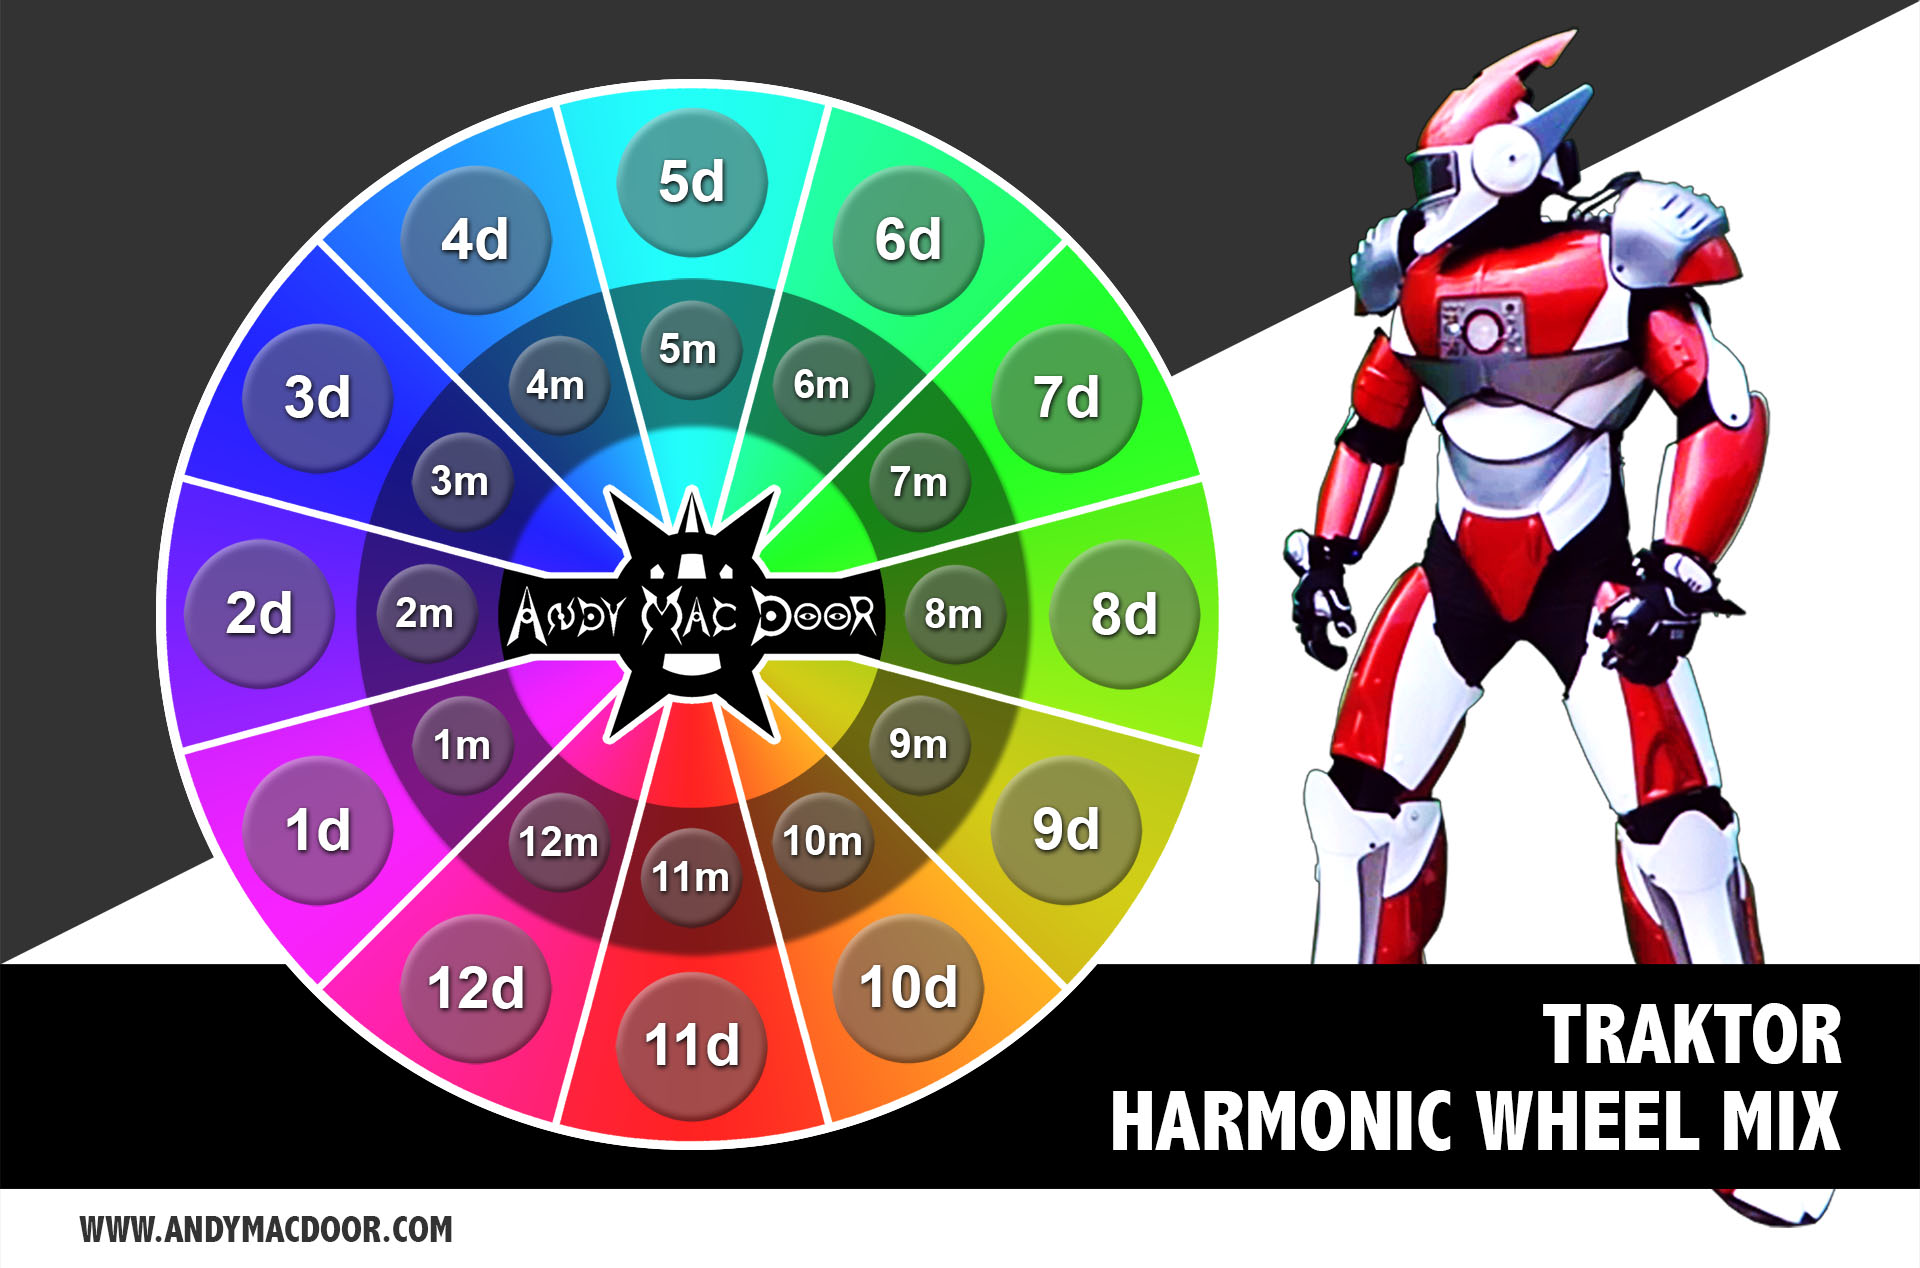 TRAKTOR - Harmonic mix wheel schema - Camelot - by Andy Mac Door